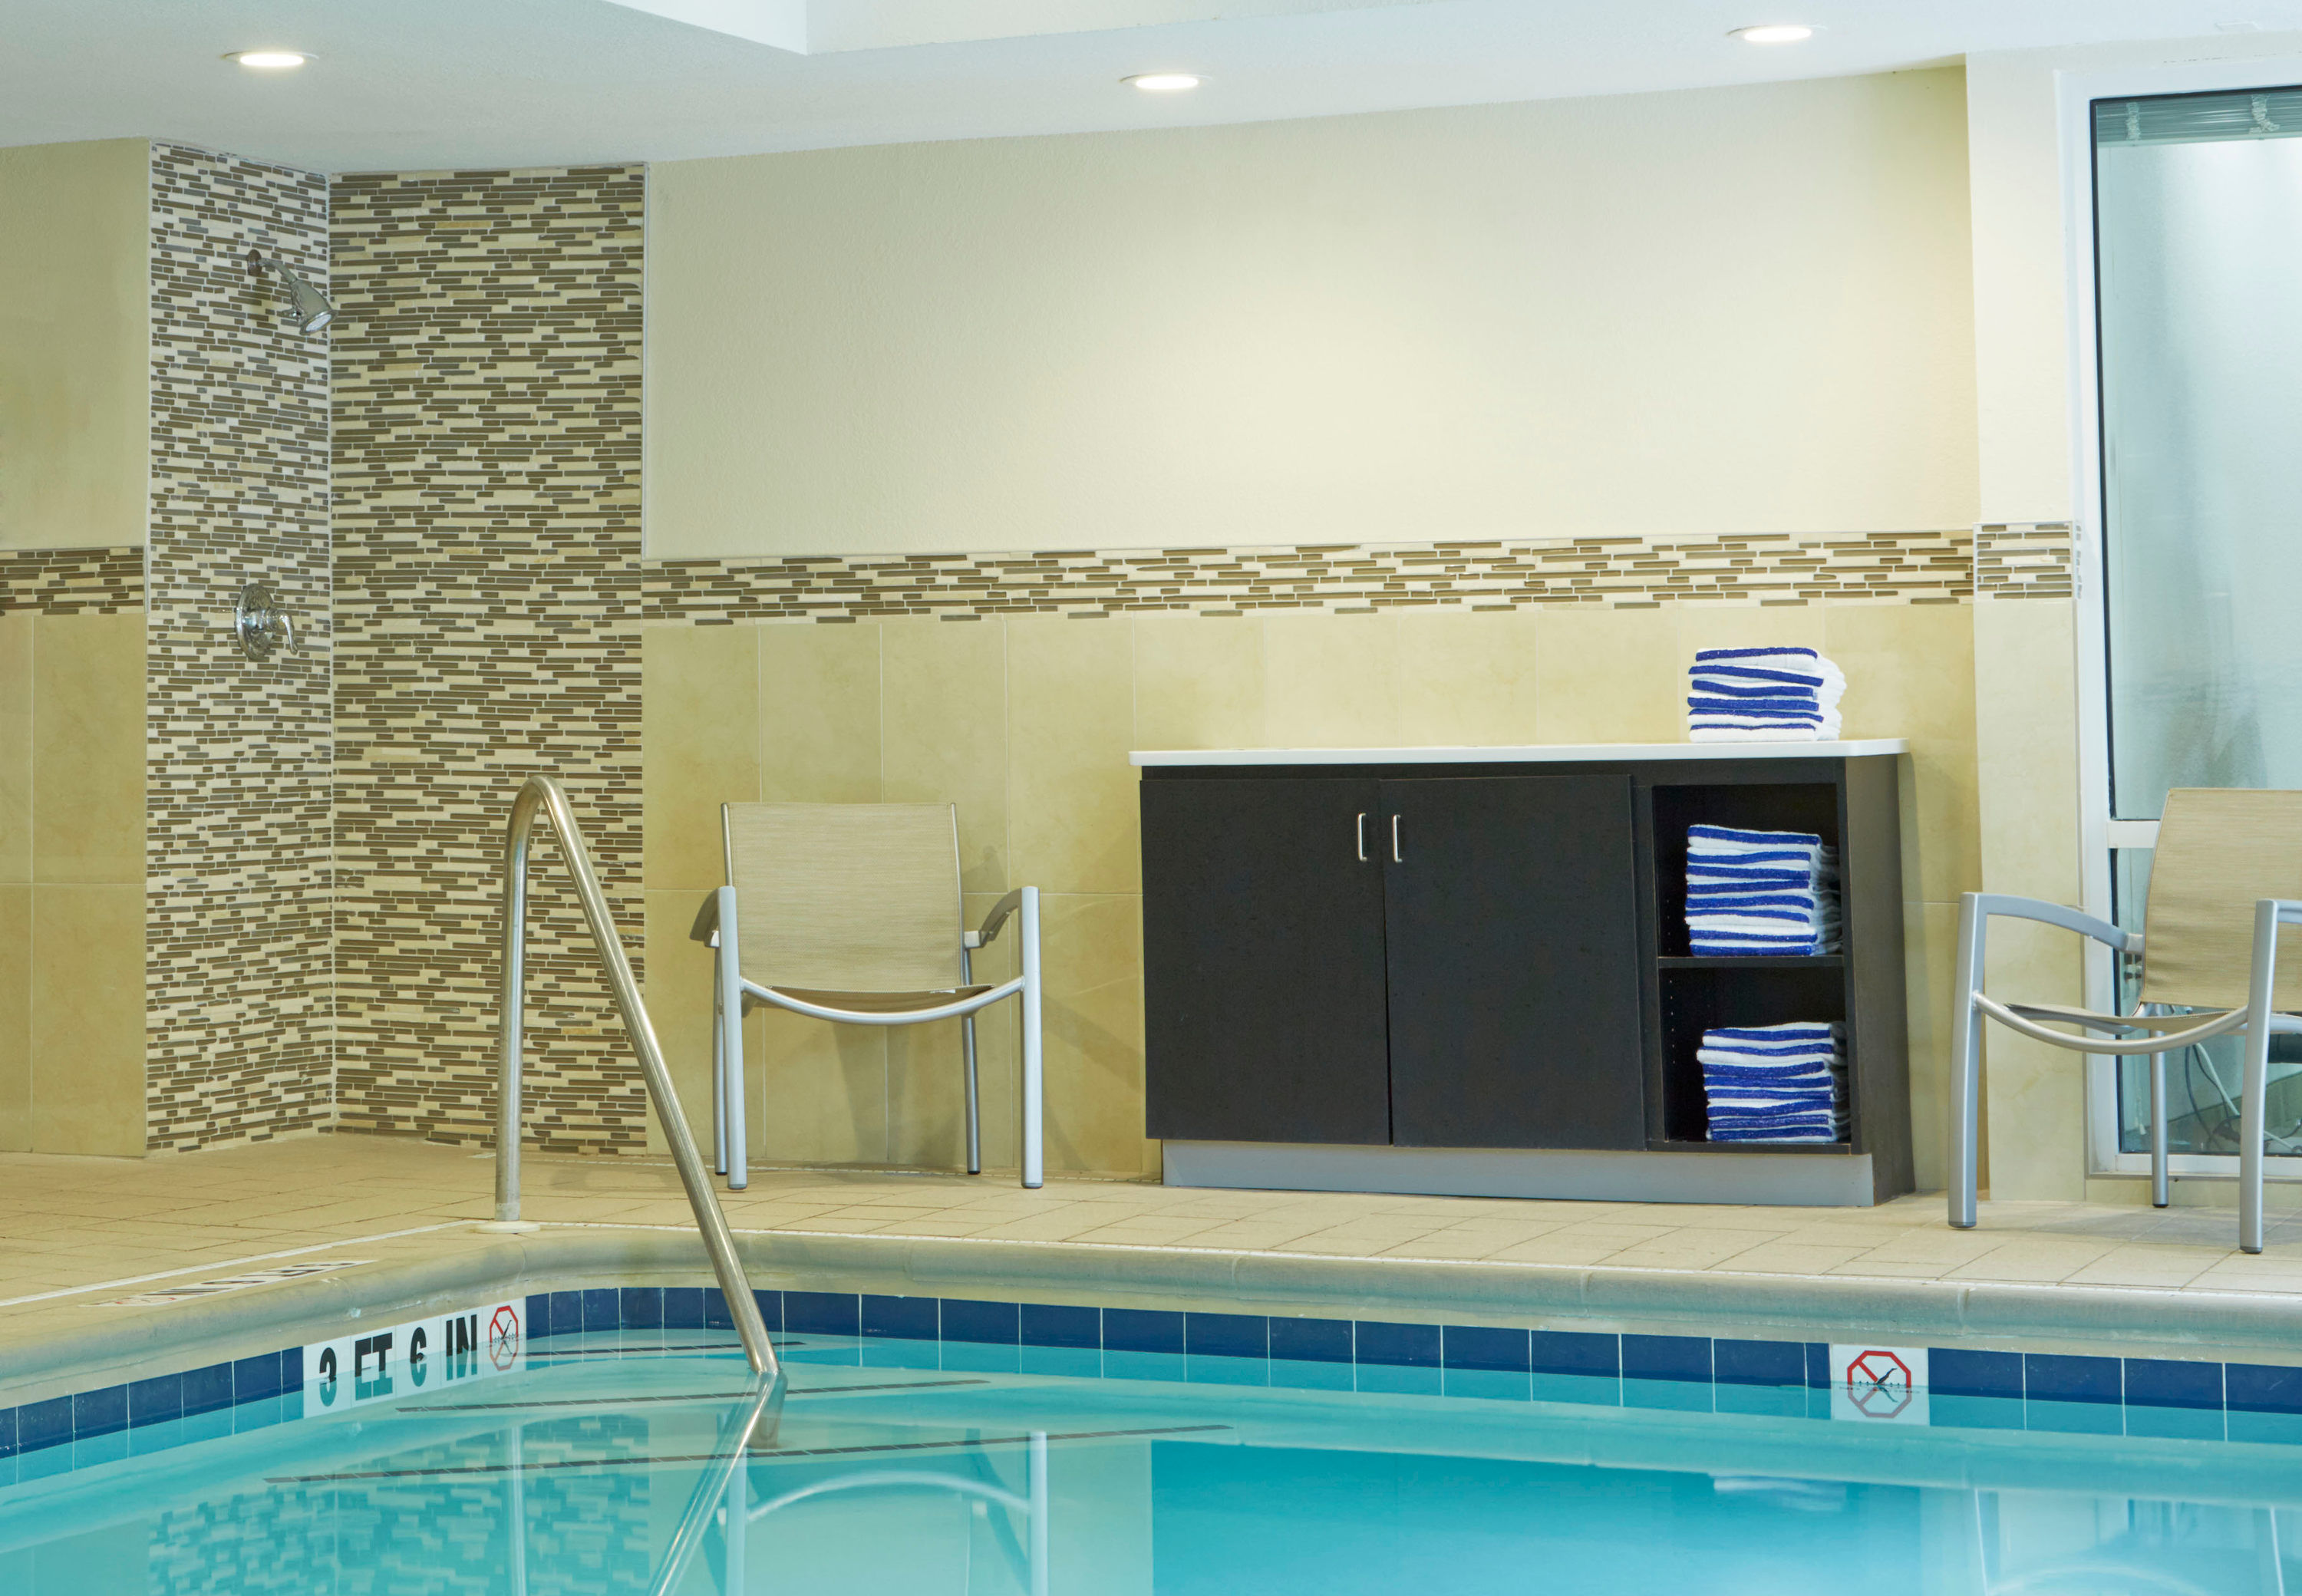 SpringHill Suites by Marriott Atlanta Six Flags image 2